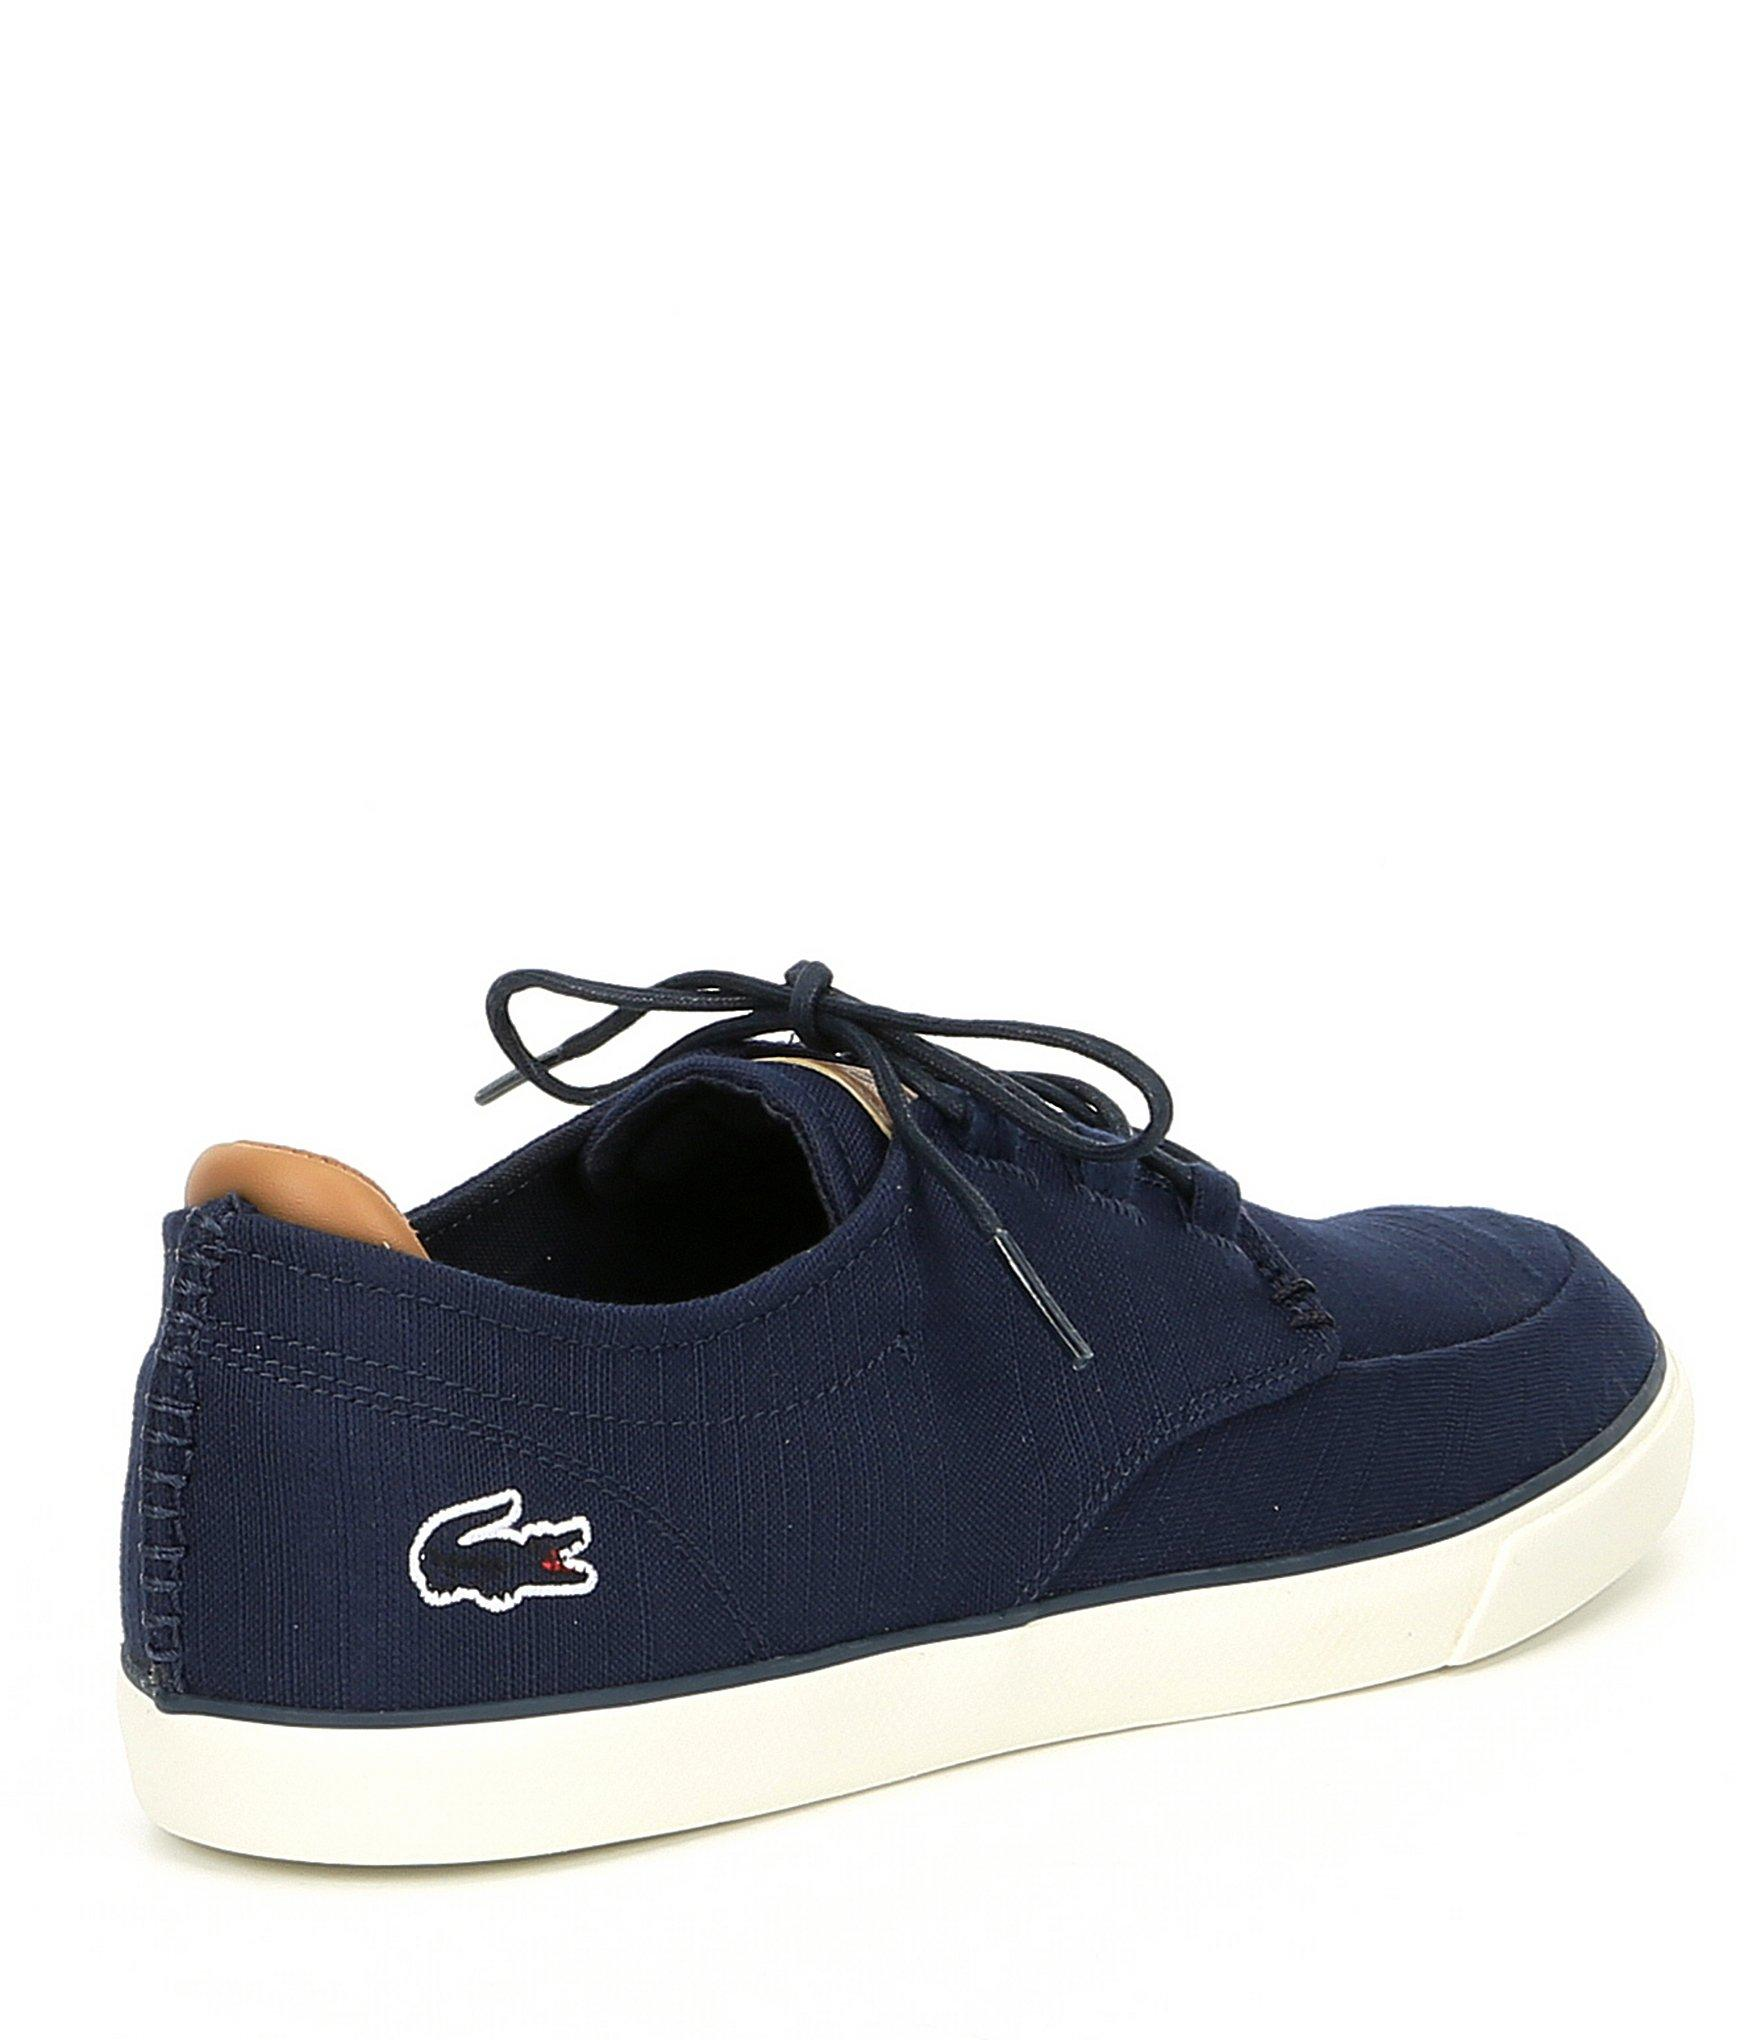 3c8e4d750 Lacoste - Blue Men s Esparre Sneaker for Men - Lyst. View fullscreen